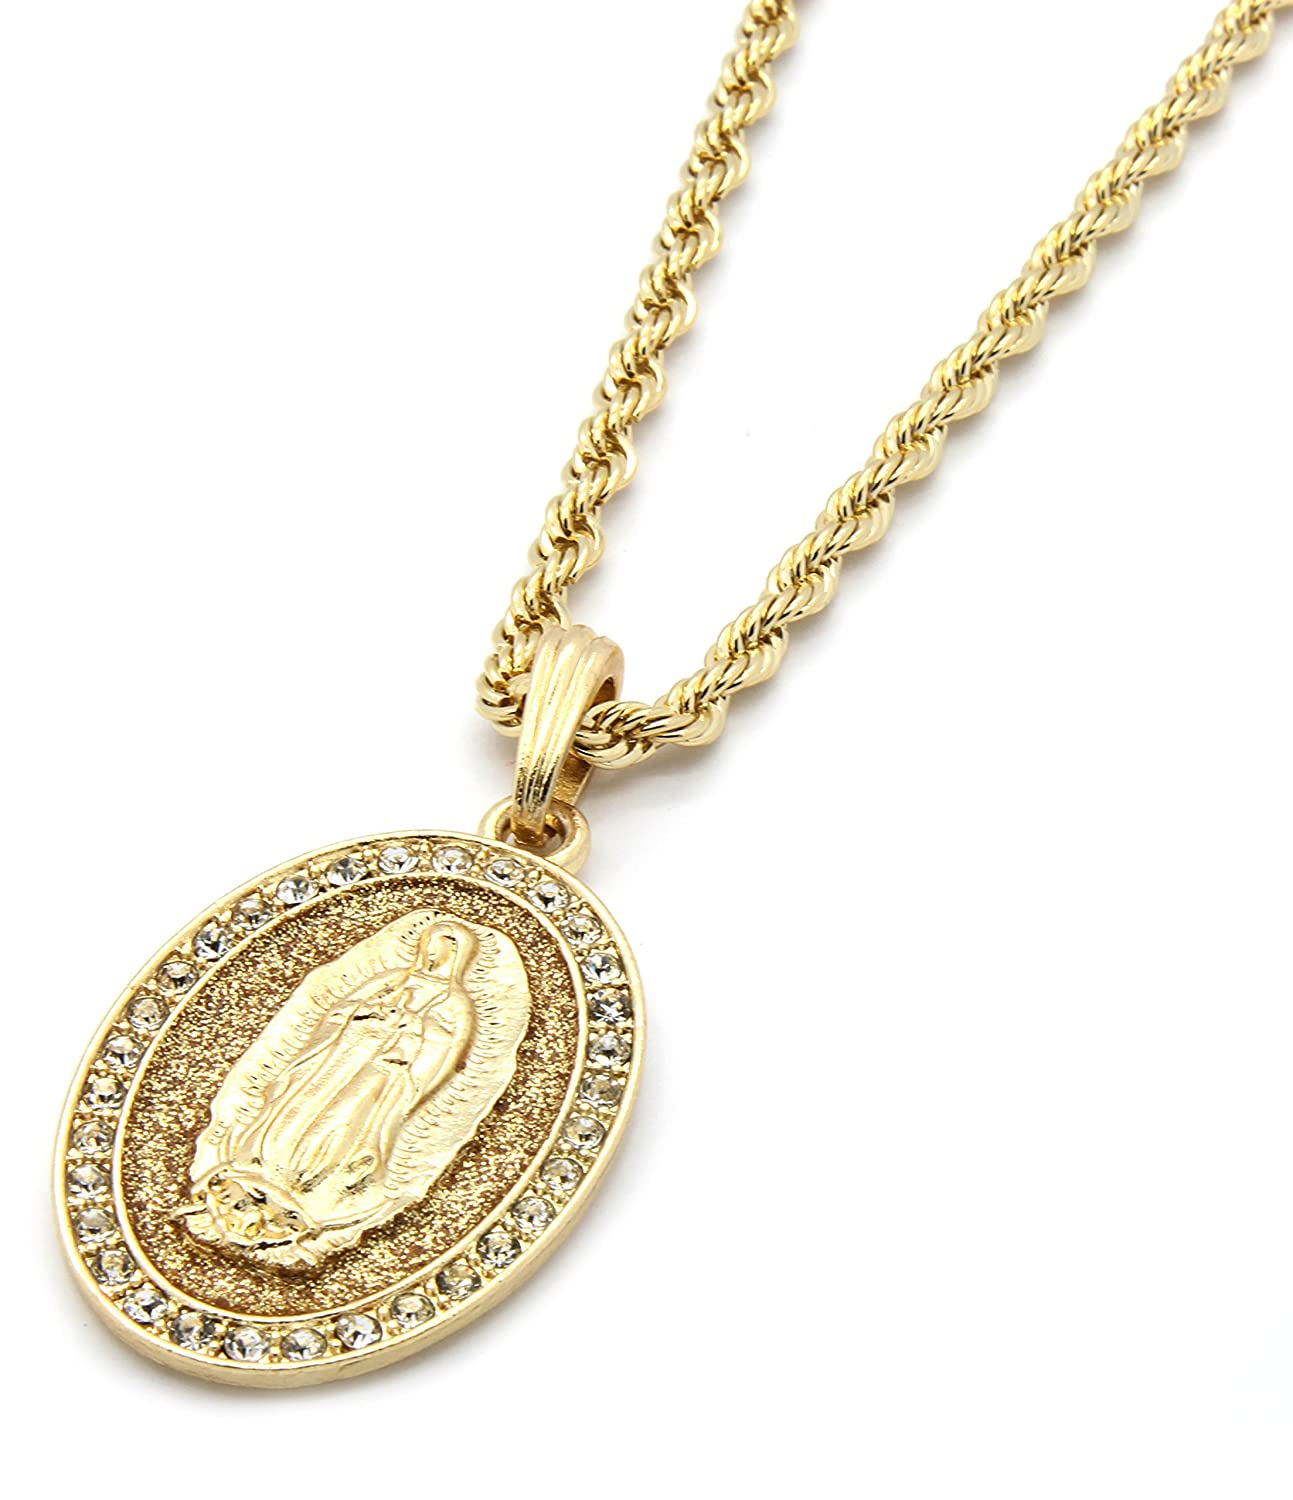 ip chain necklace yellow gucci gold puffed mariner